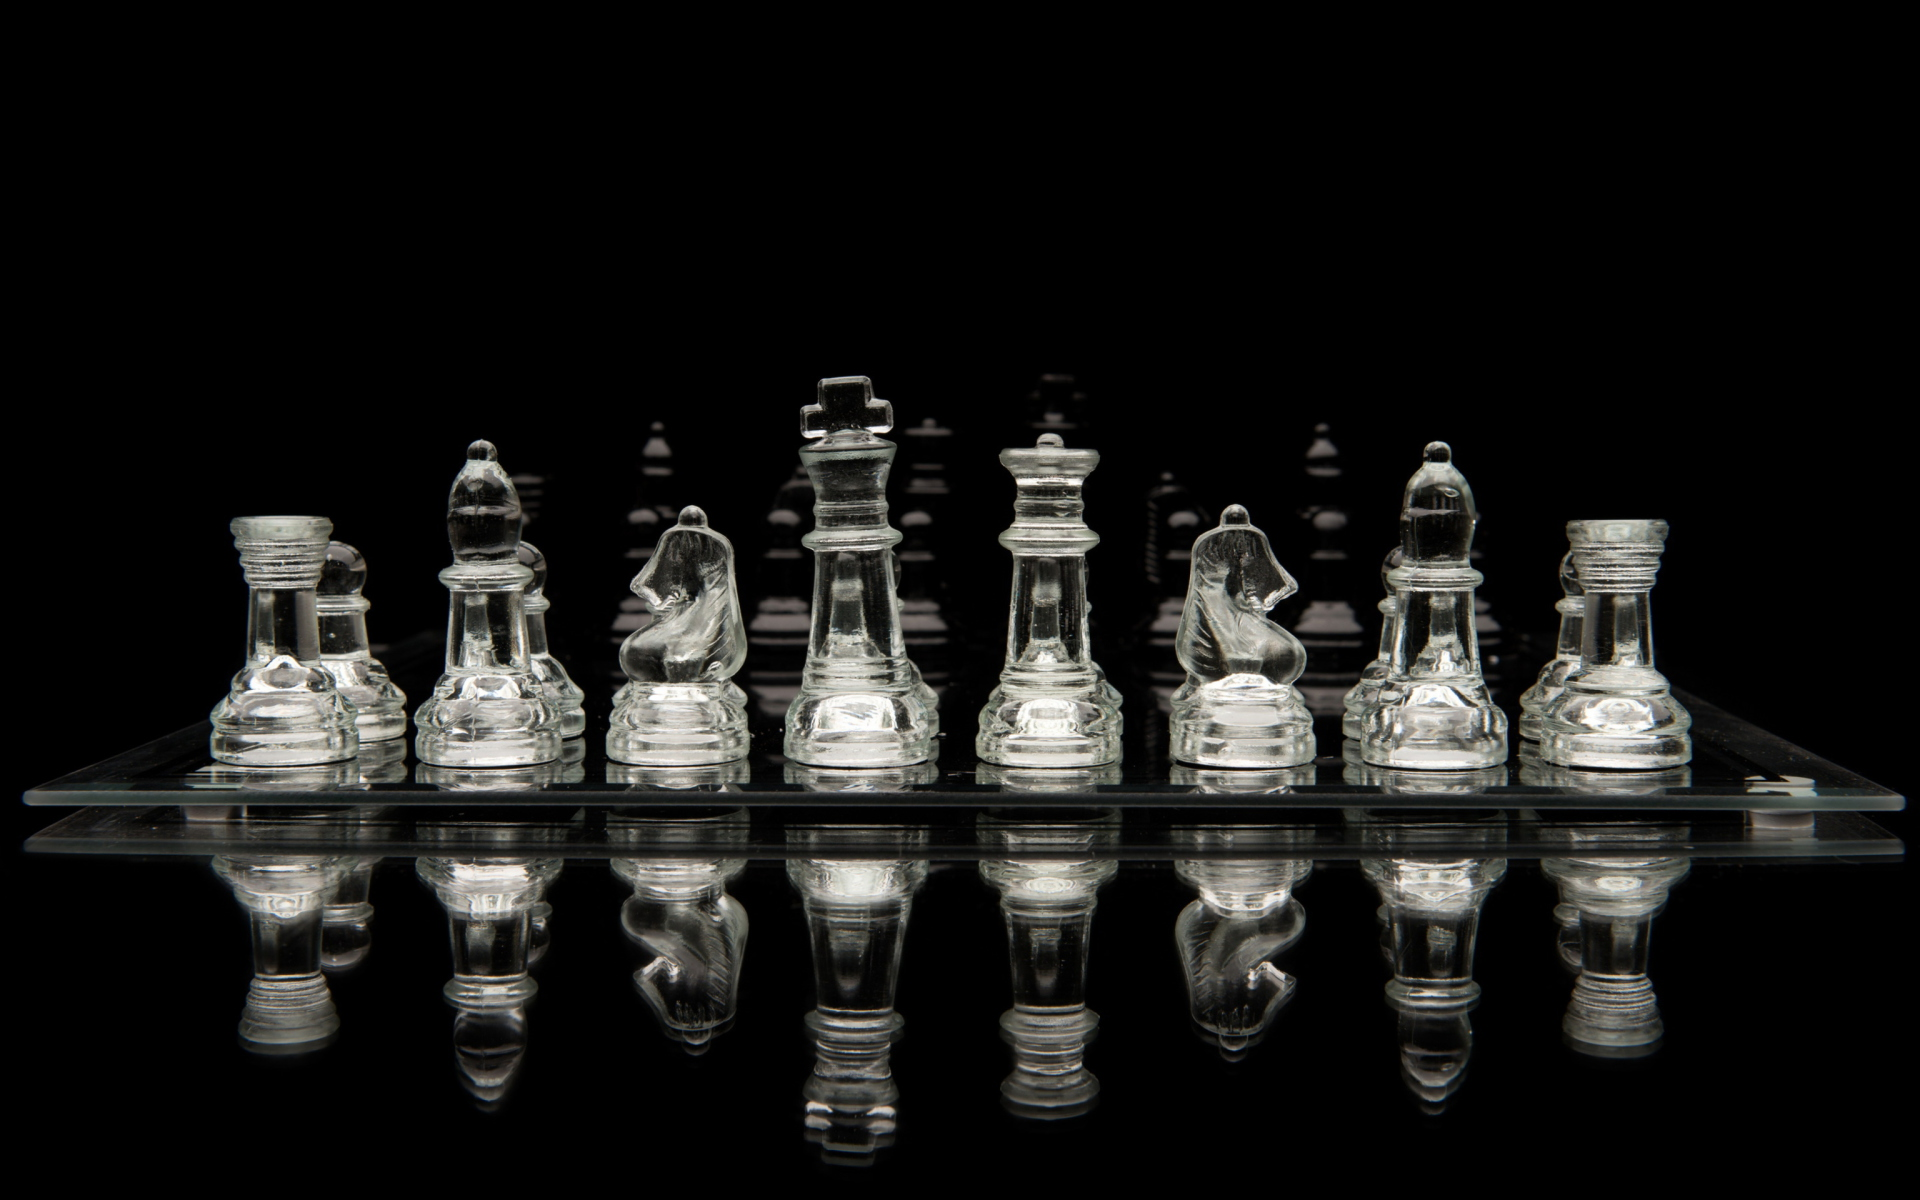 Chess Wallpaper Chess Game Hd Wallpapers: Chess IPhone Wallpaper